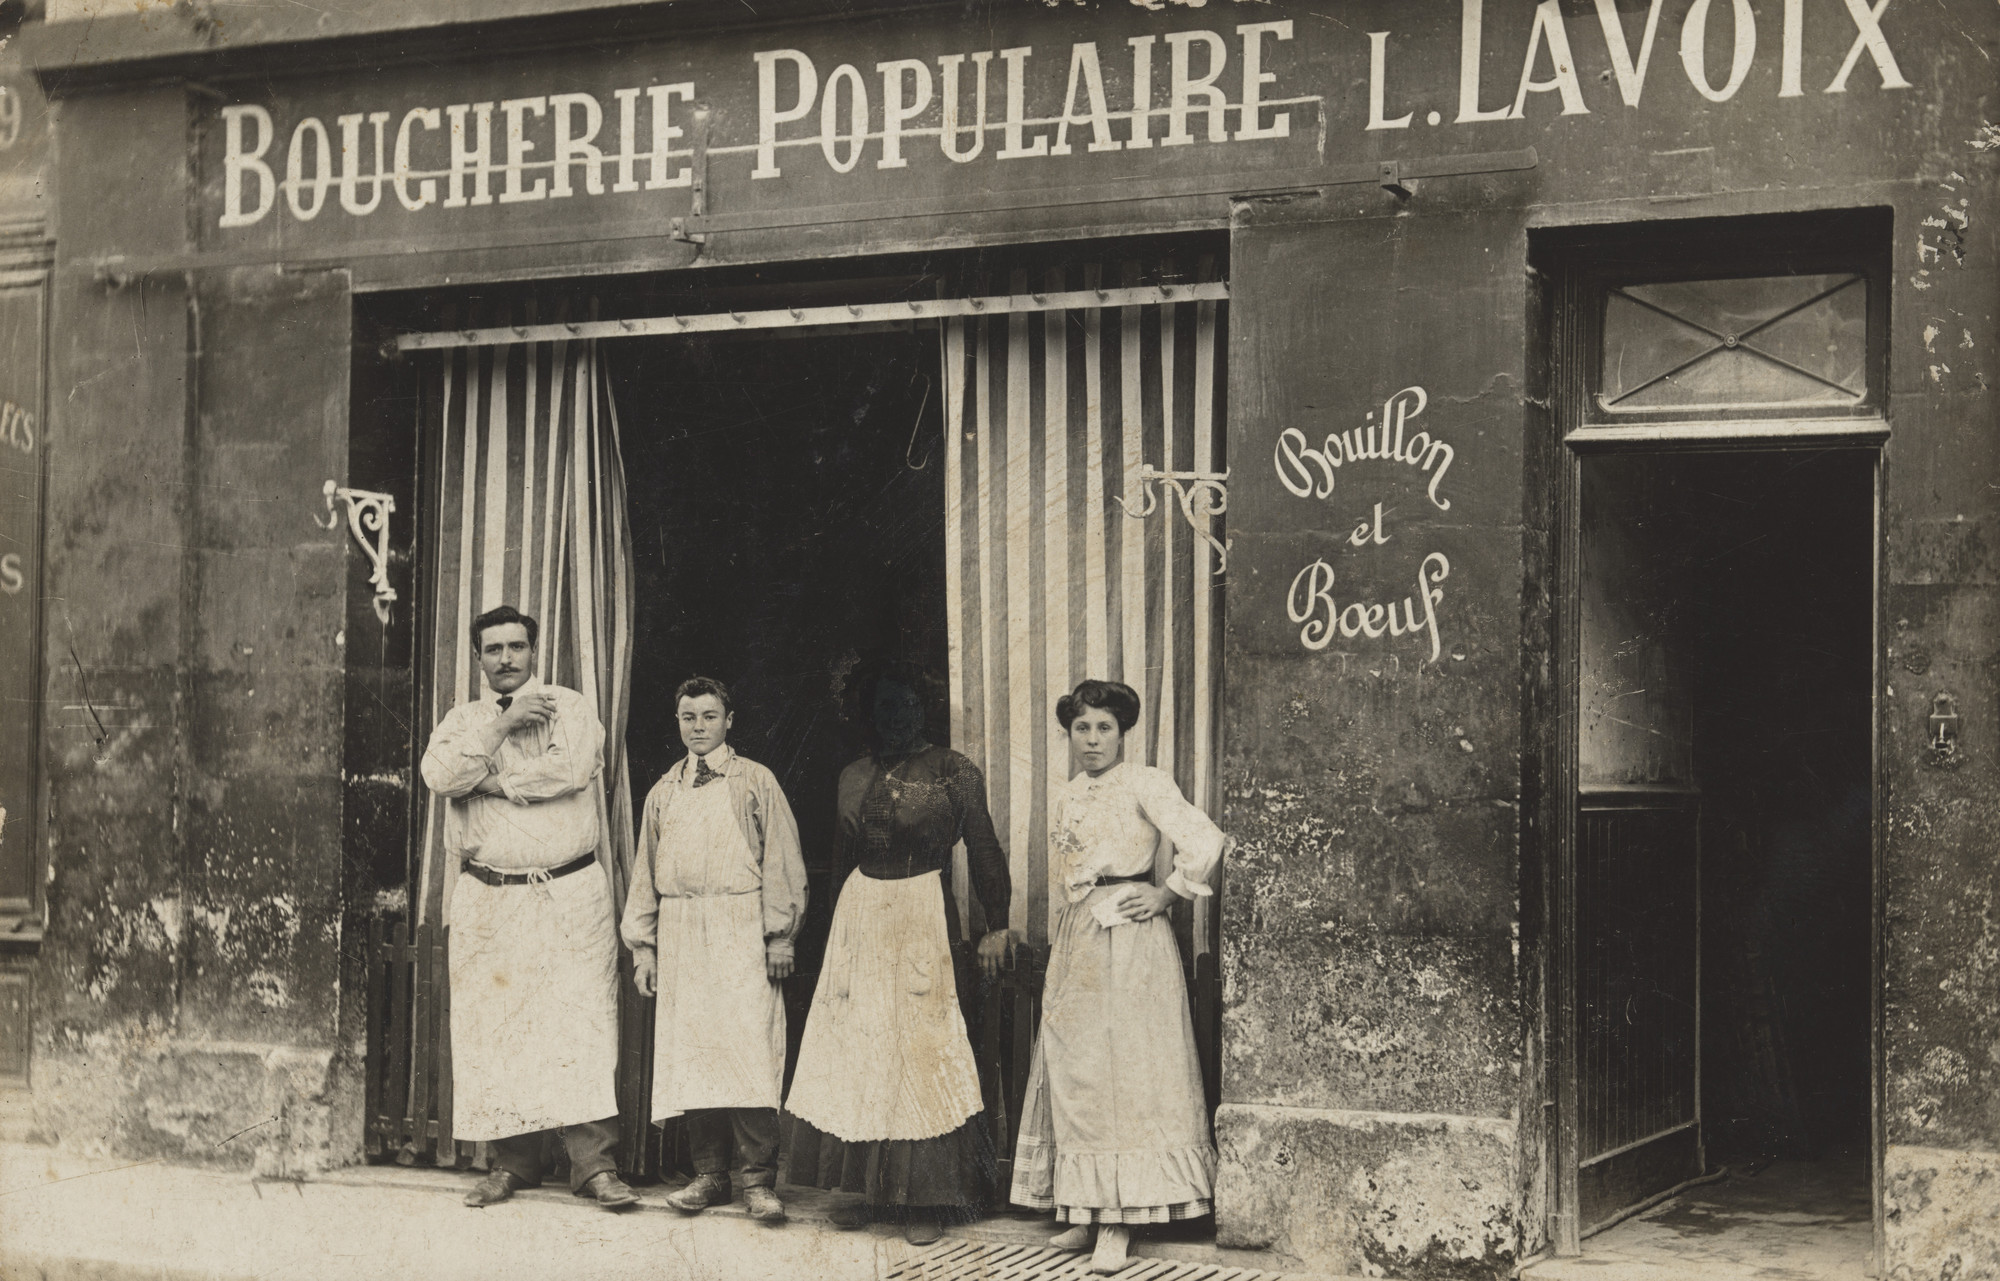 Unknown photographer. Boucherie populaire, L. Lavoix, Bouillon et bœuf, Saint-Michel. 1913